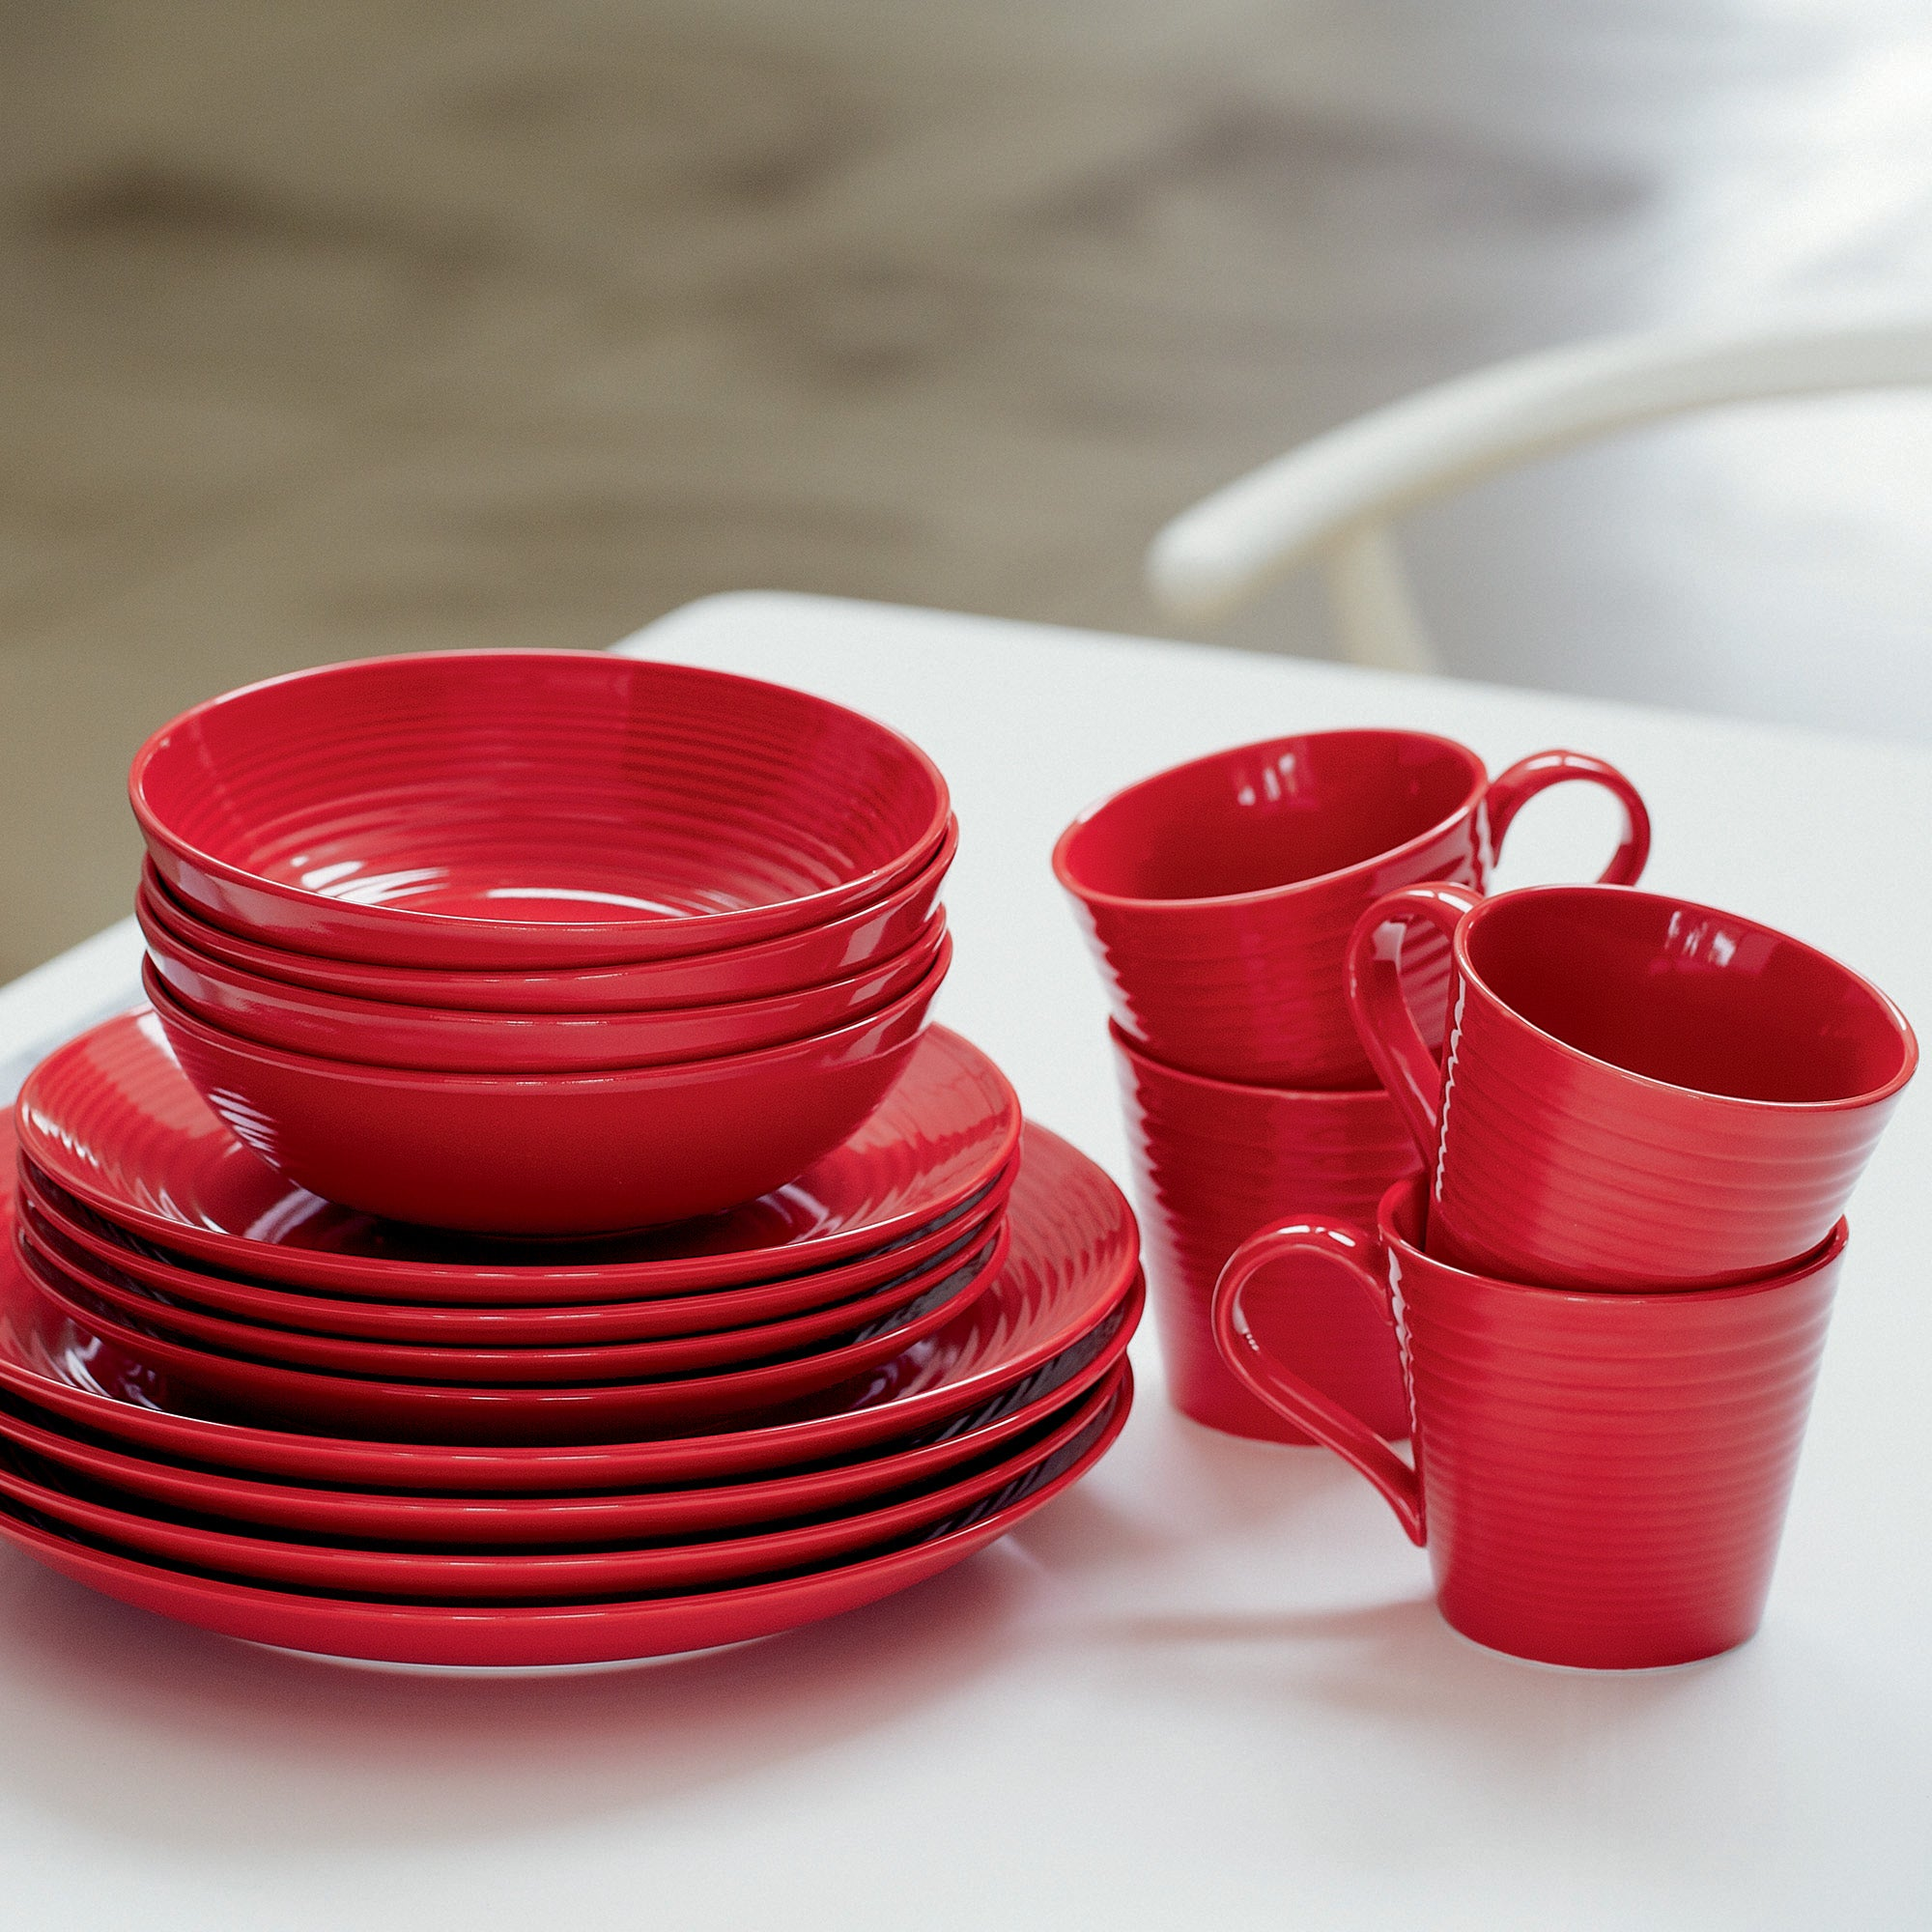 Image of Gordon Ramsay Red Maze 16 Piece Dinner Set Red